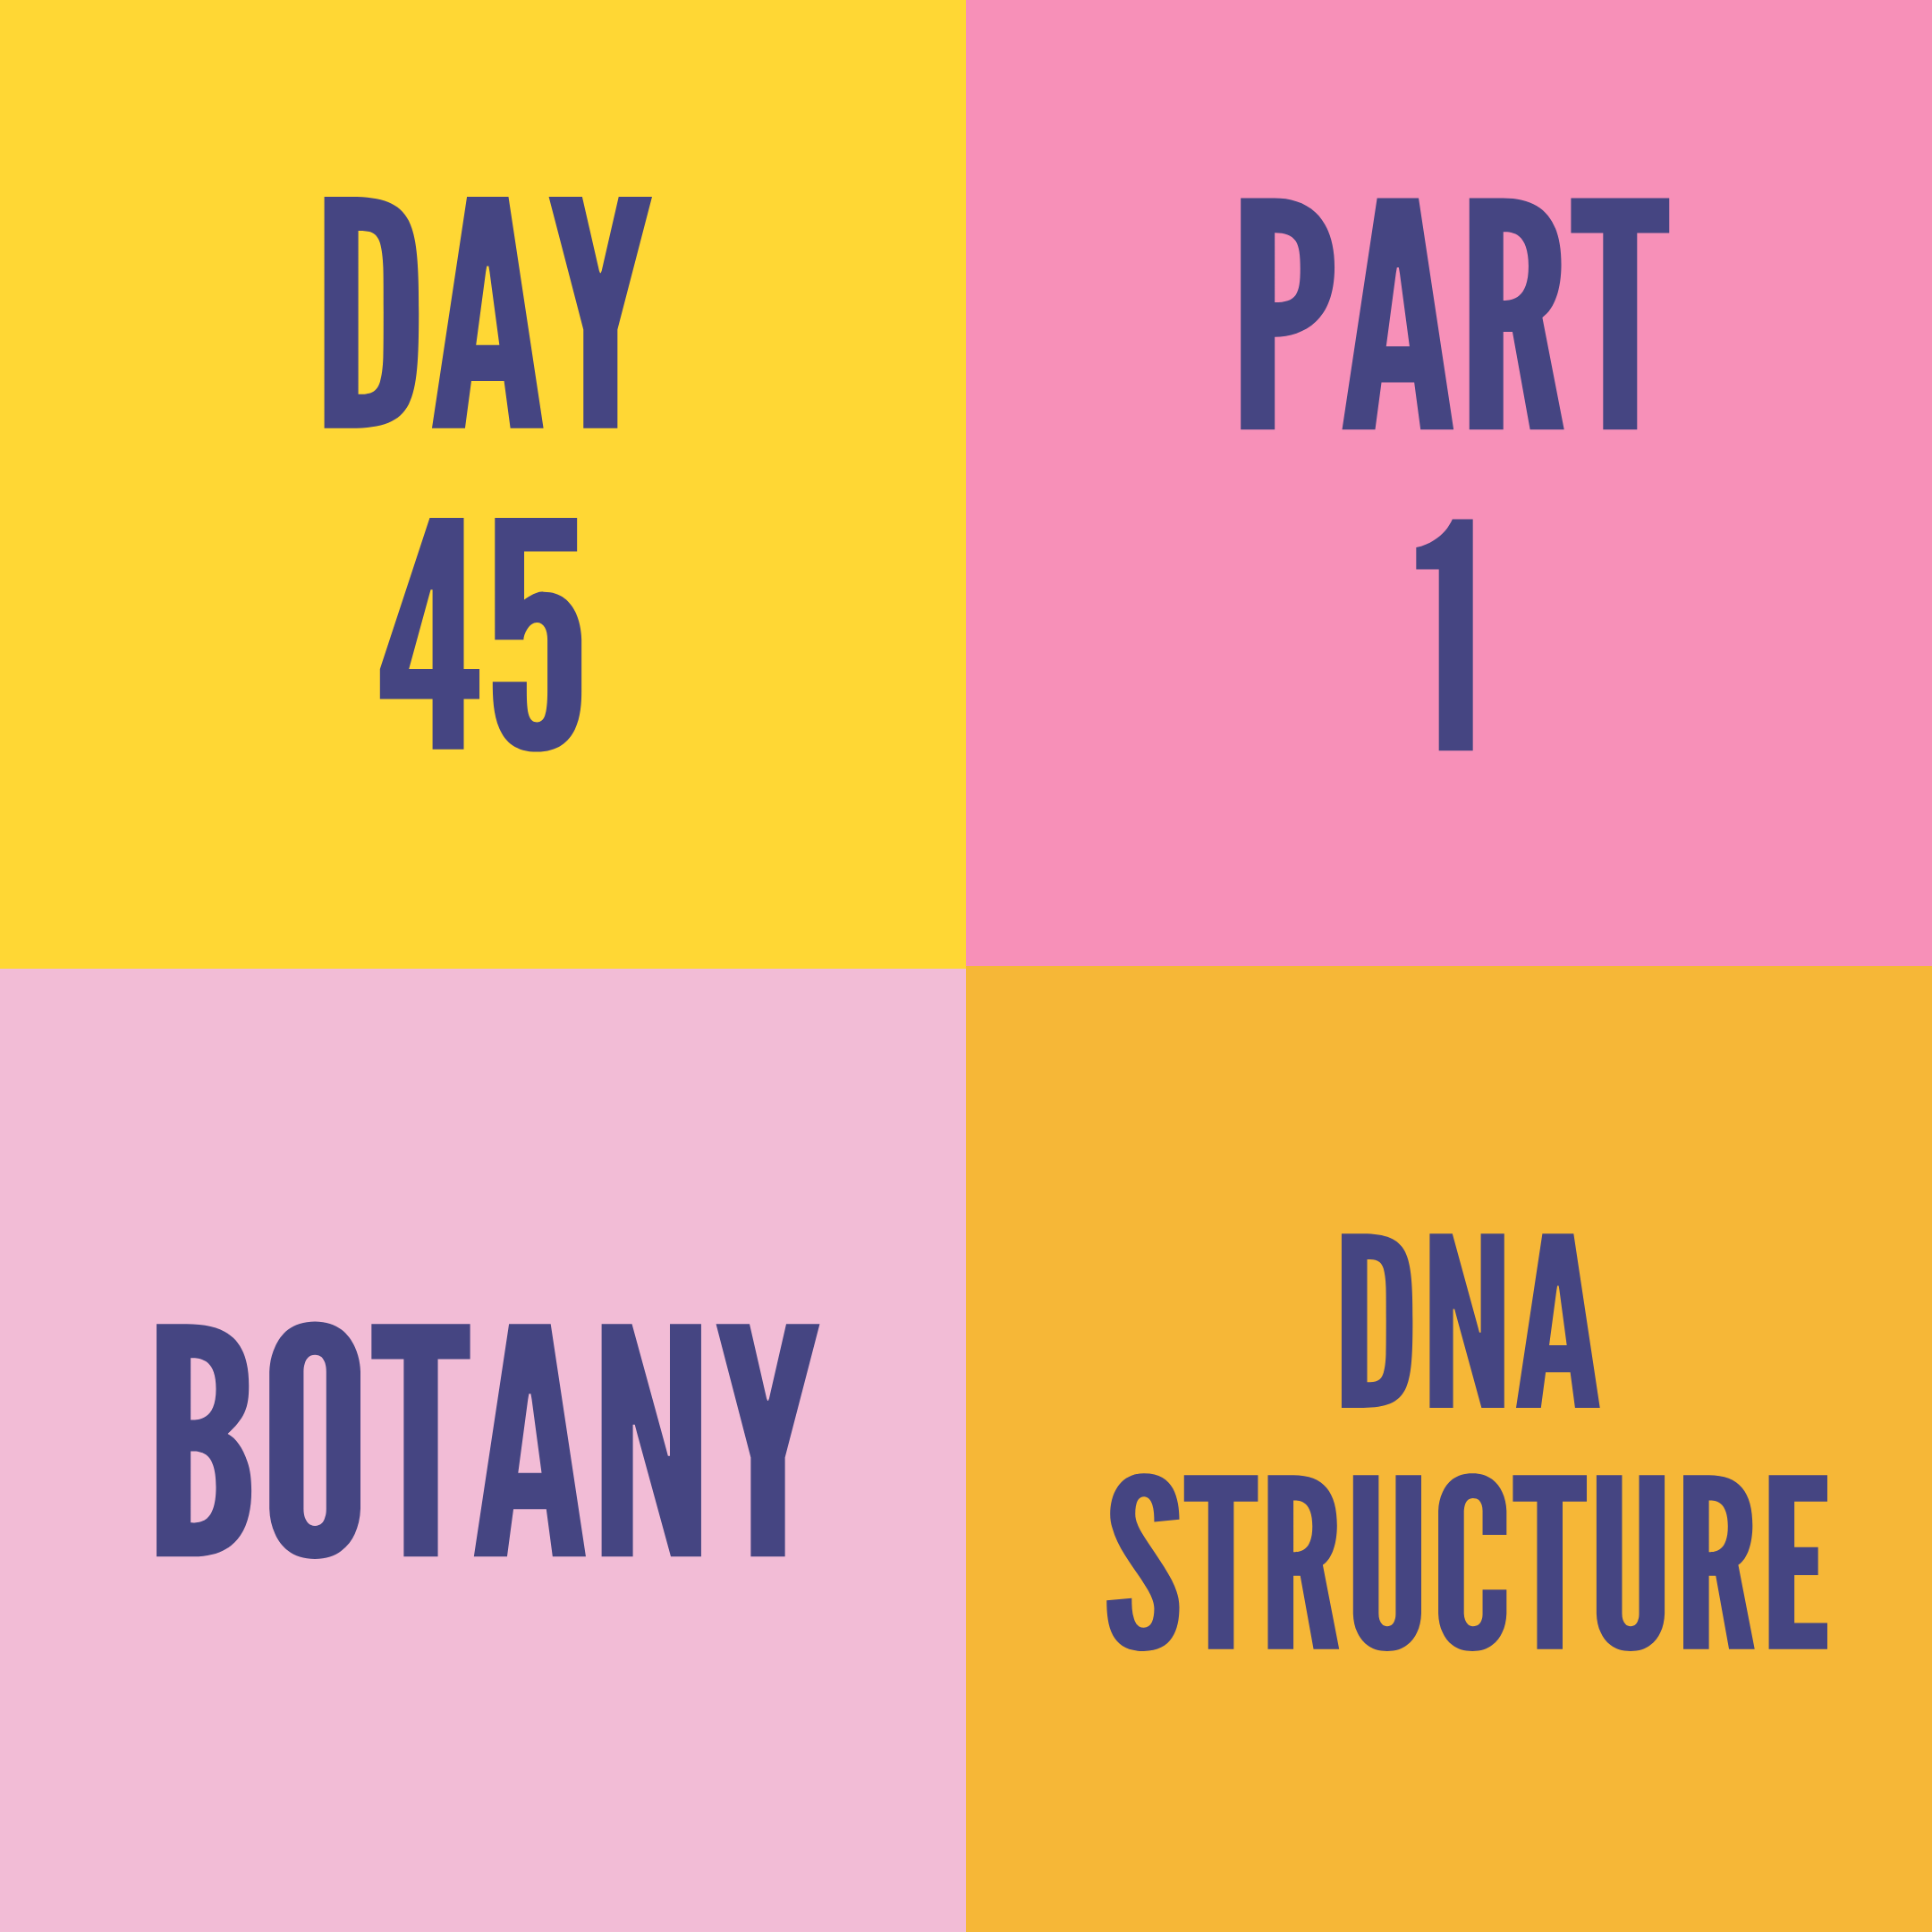 DAY-45 PART-1 DNA STRUCTURE